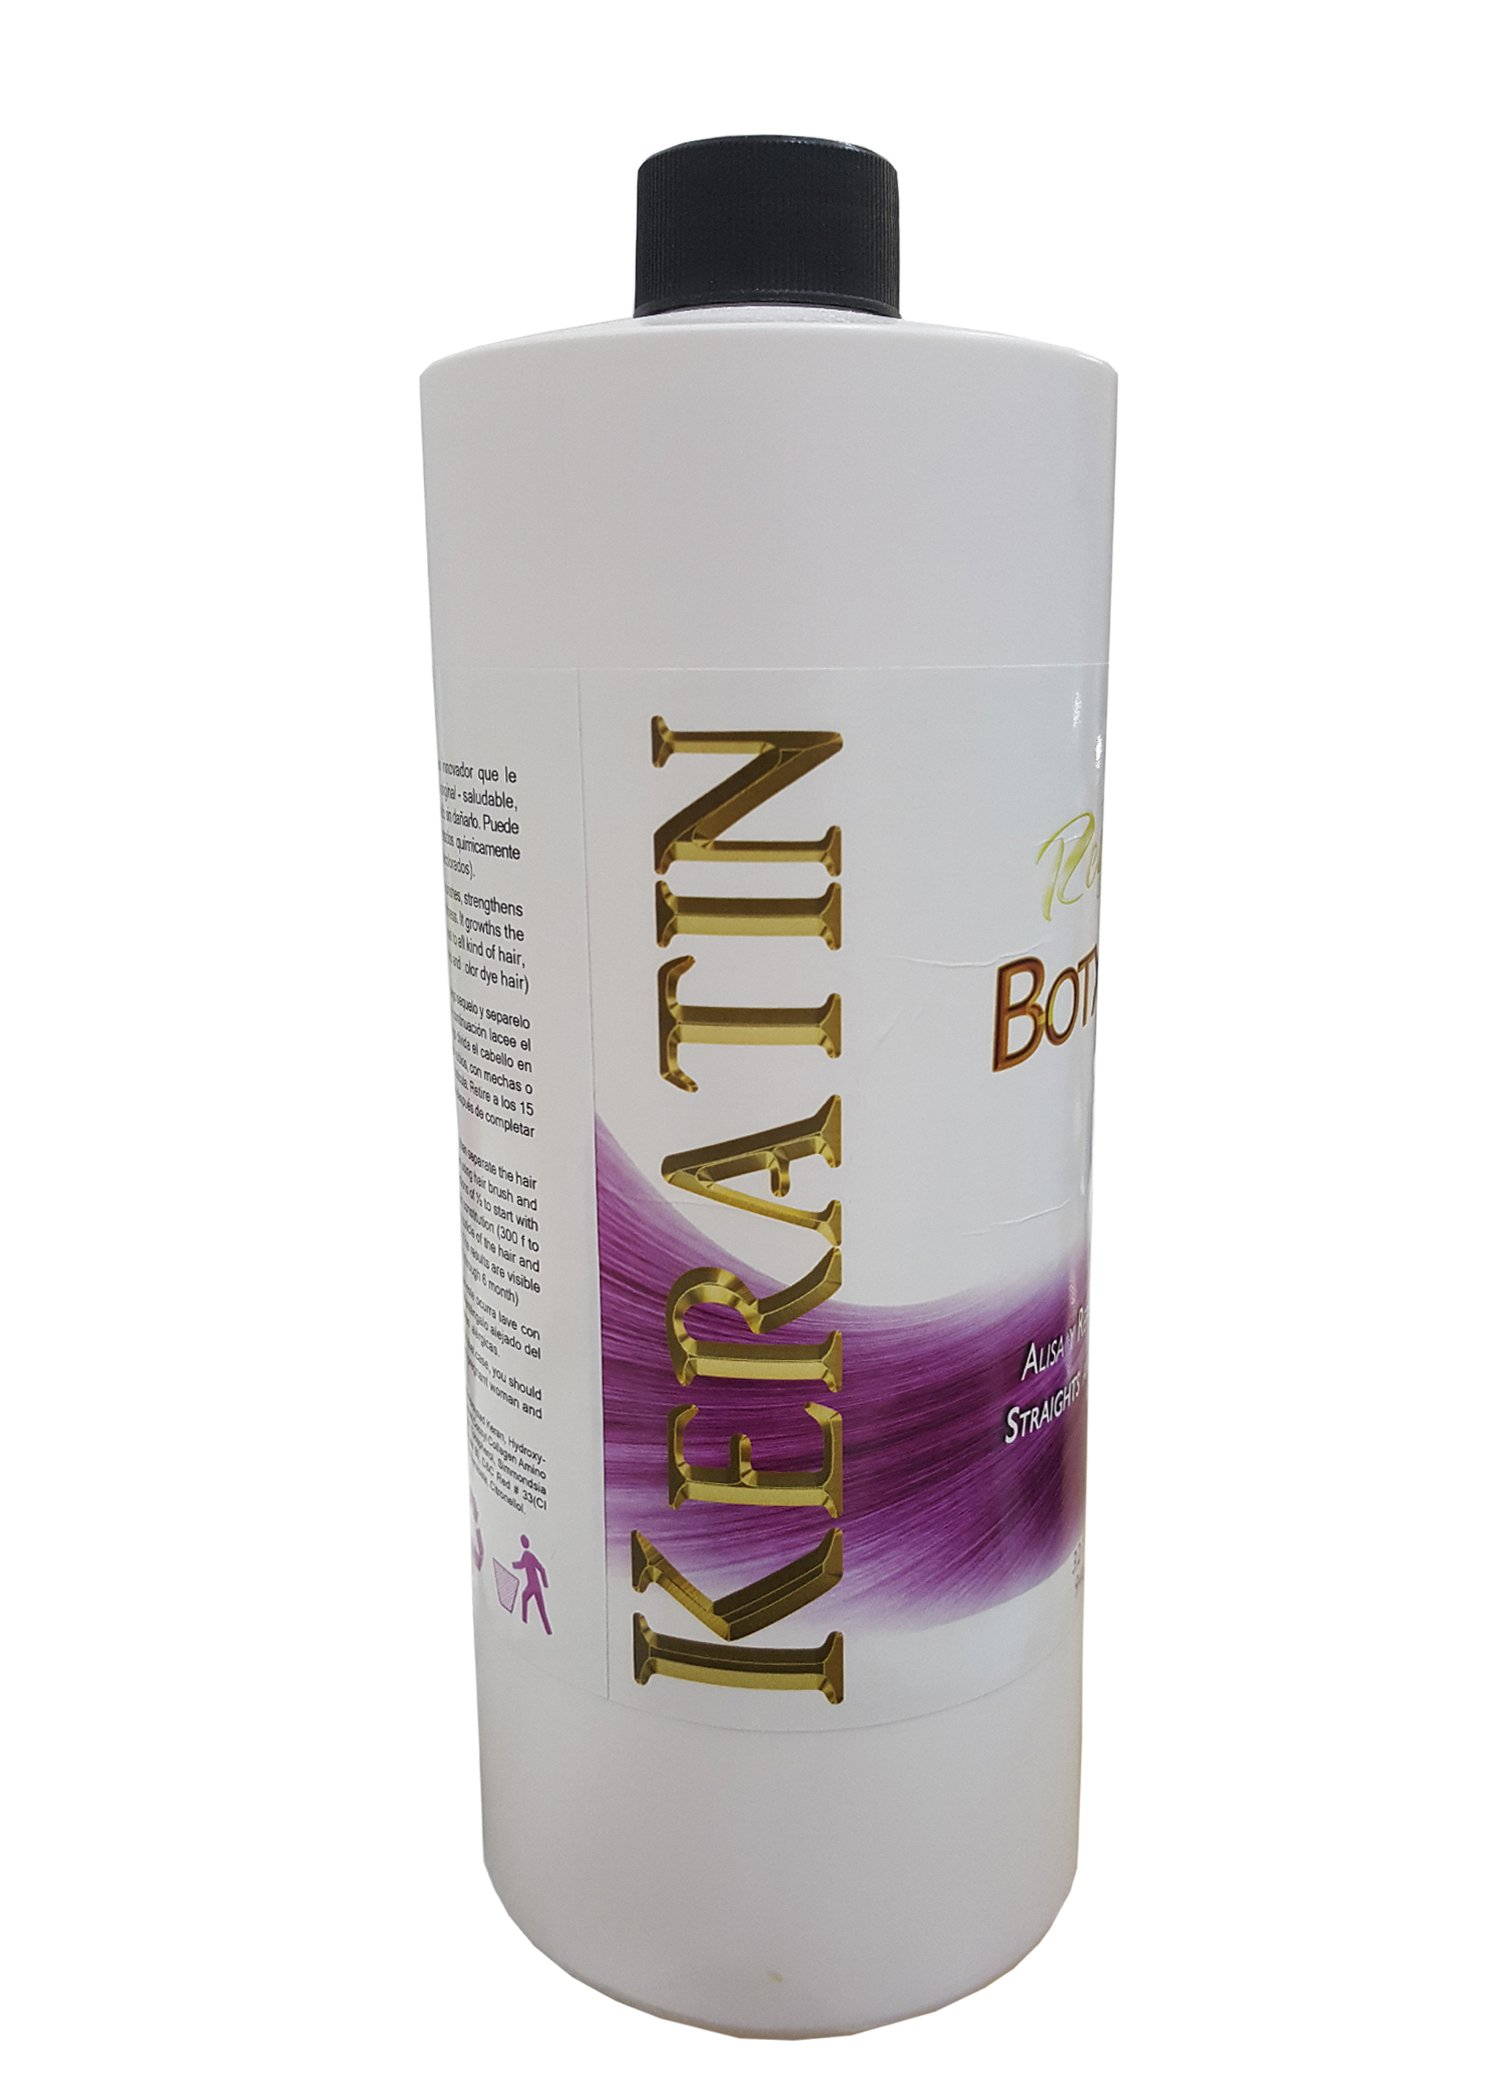 kerat treatment Botx+gel 32 oz ideal for curly hair by Reyliff (Image #2)